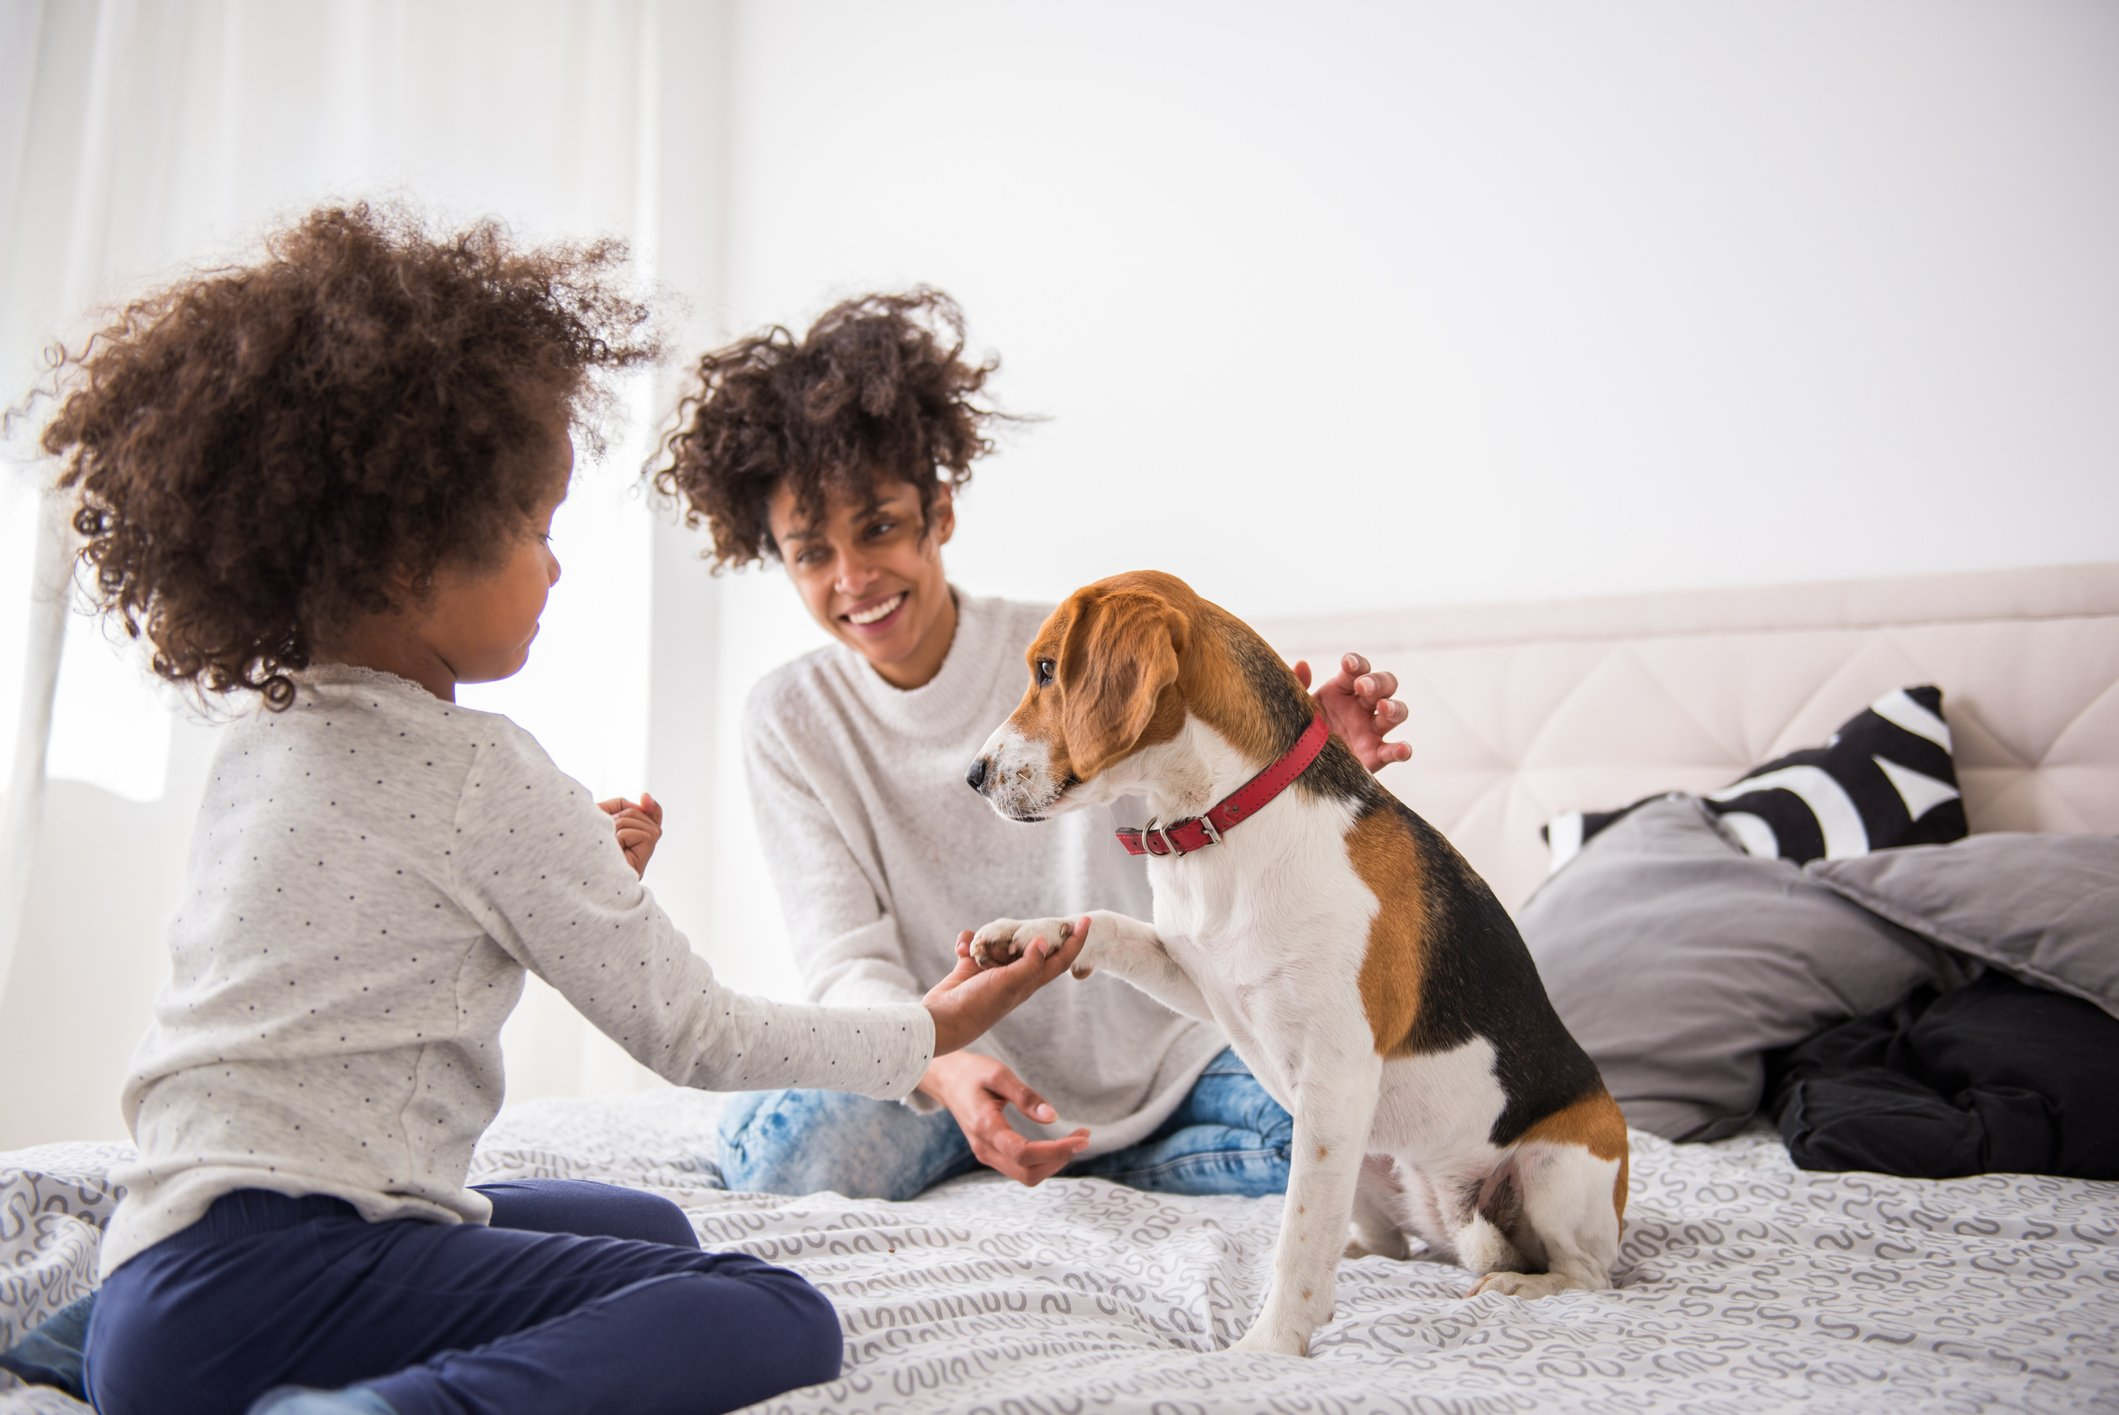 Young cute girl playing with her dog.